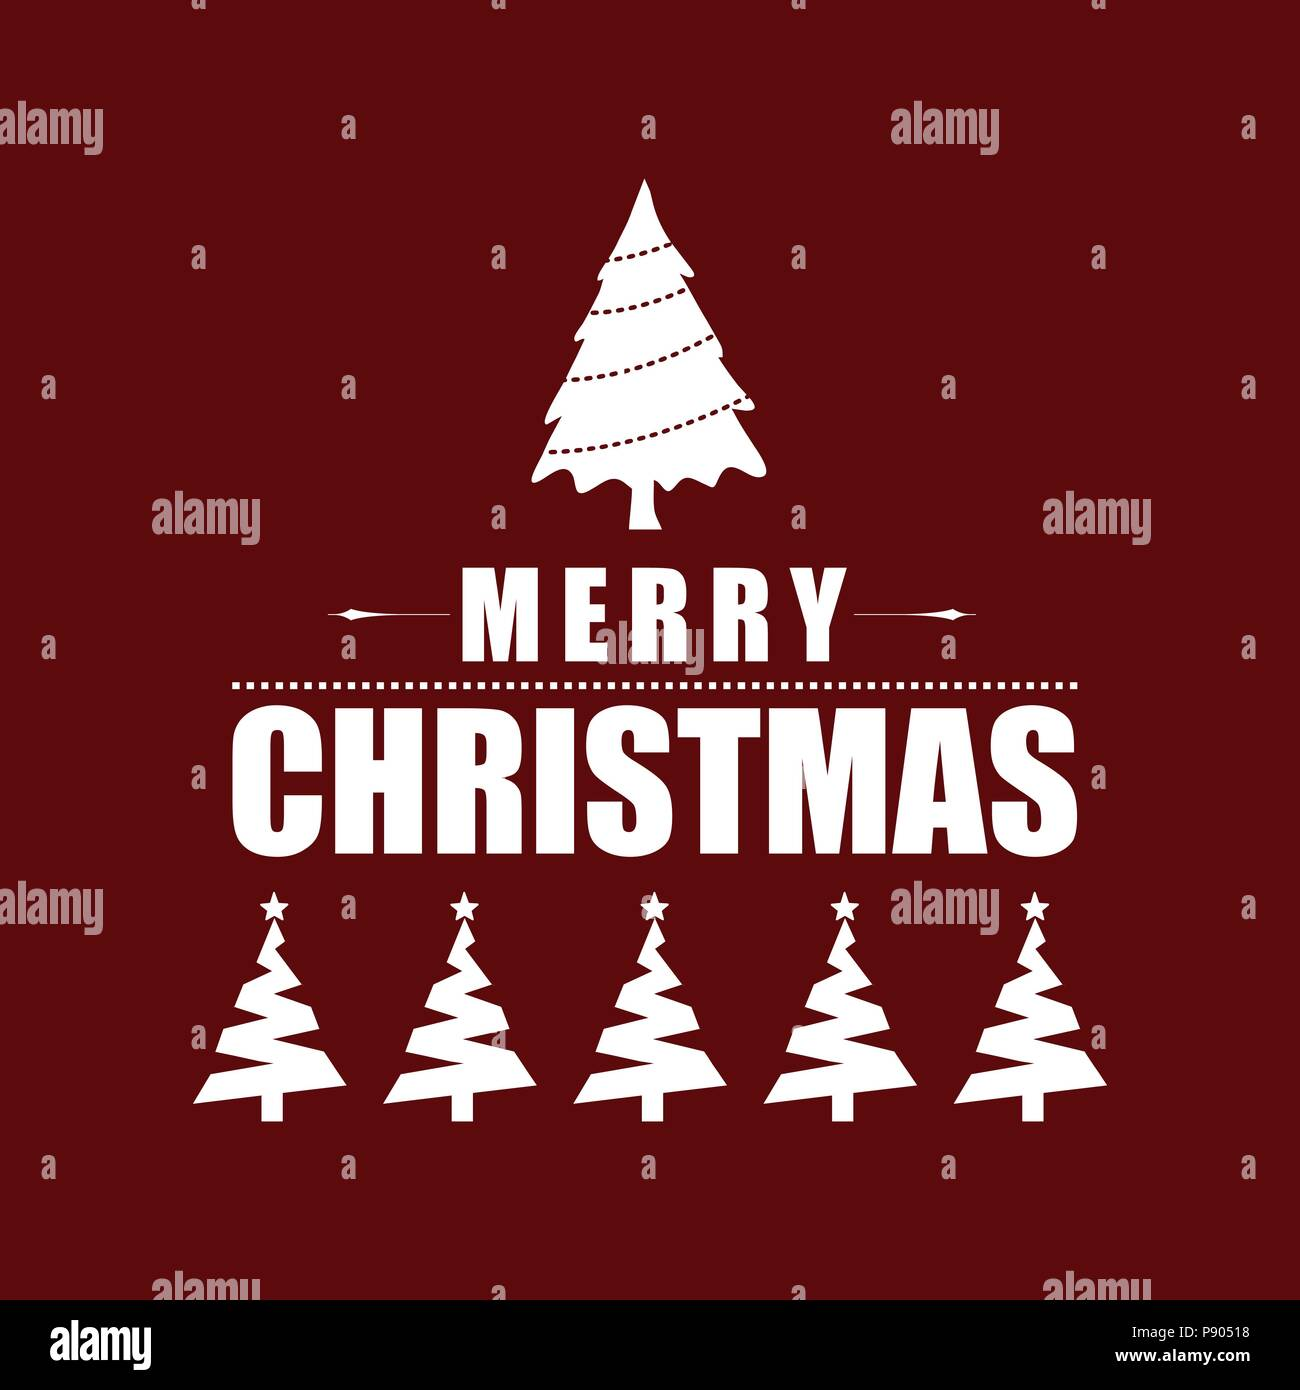 Christmas Greetings Card With Red Background Simple Typography And